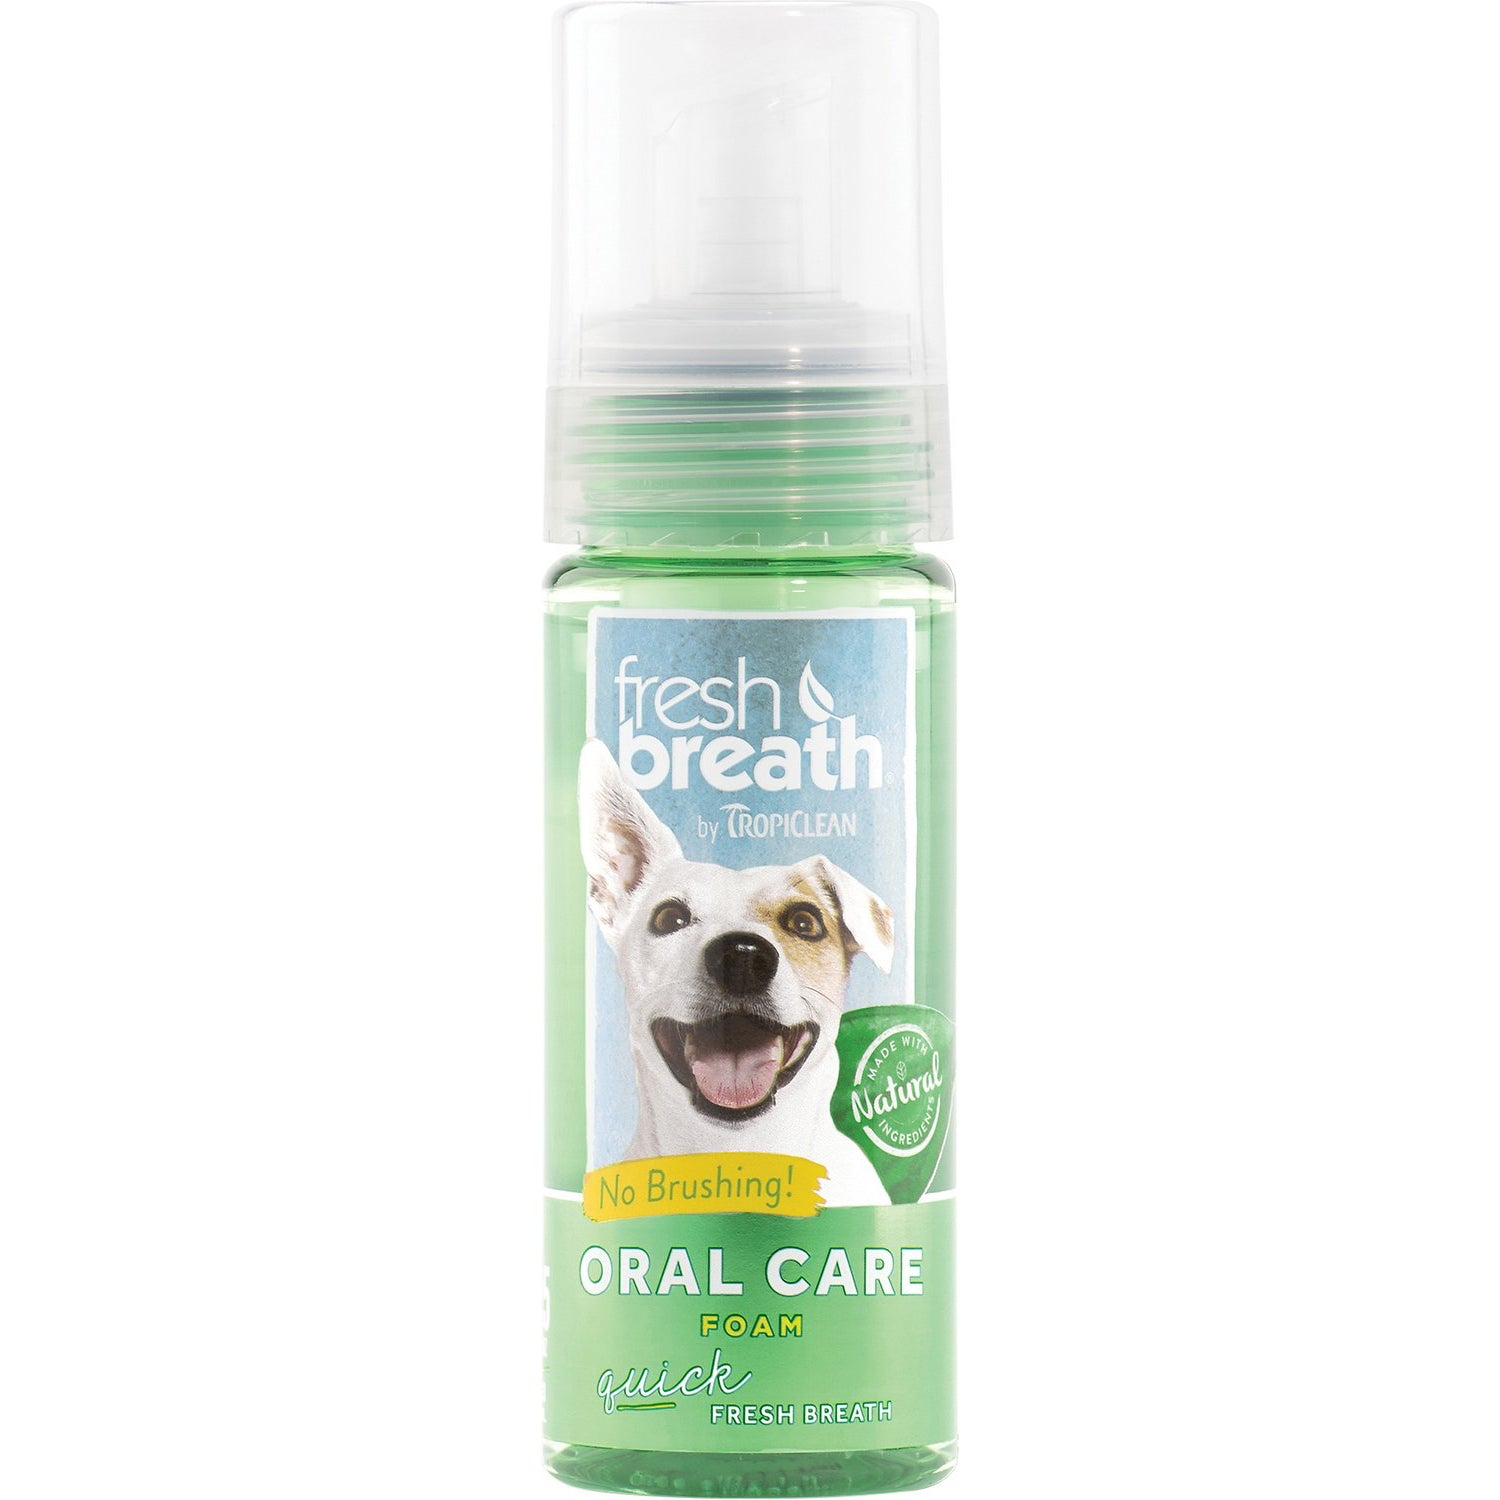 TropiClean Fresh Breath Mint Foam for Dogs & Cats